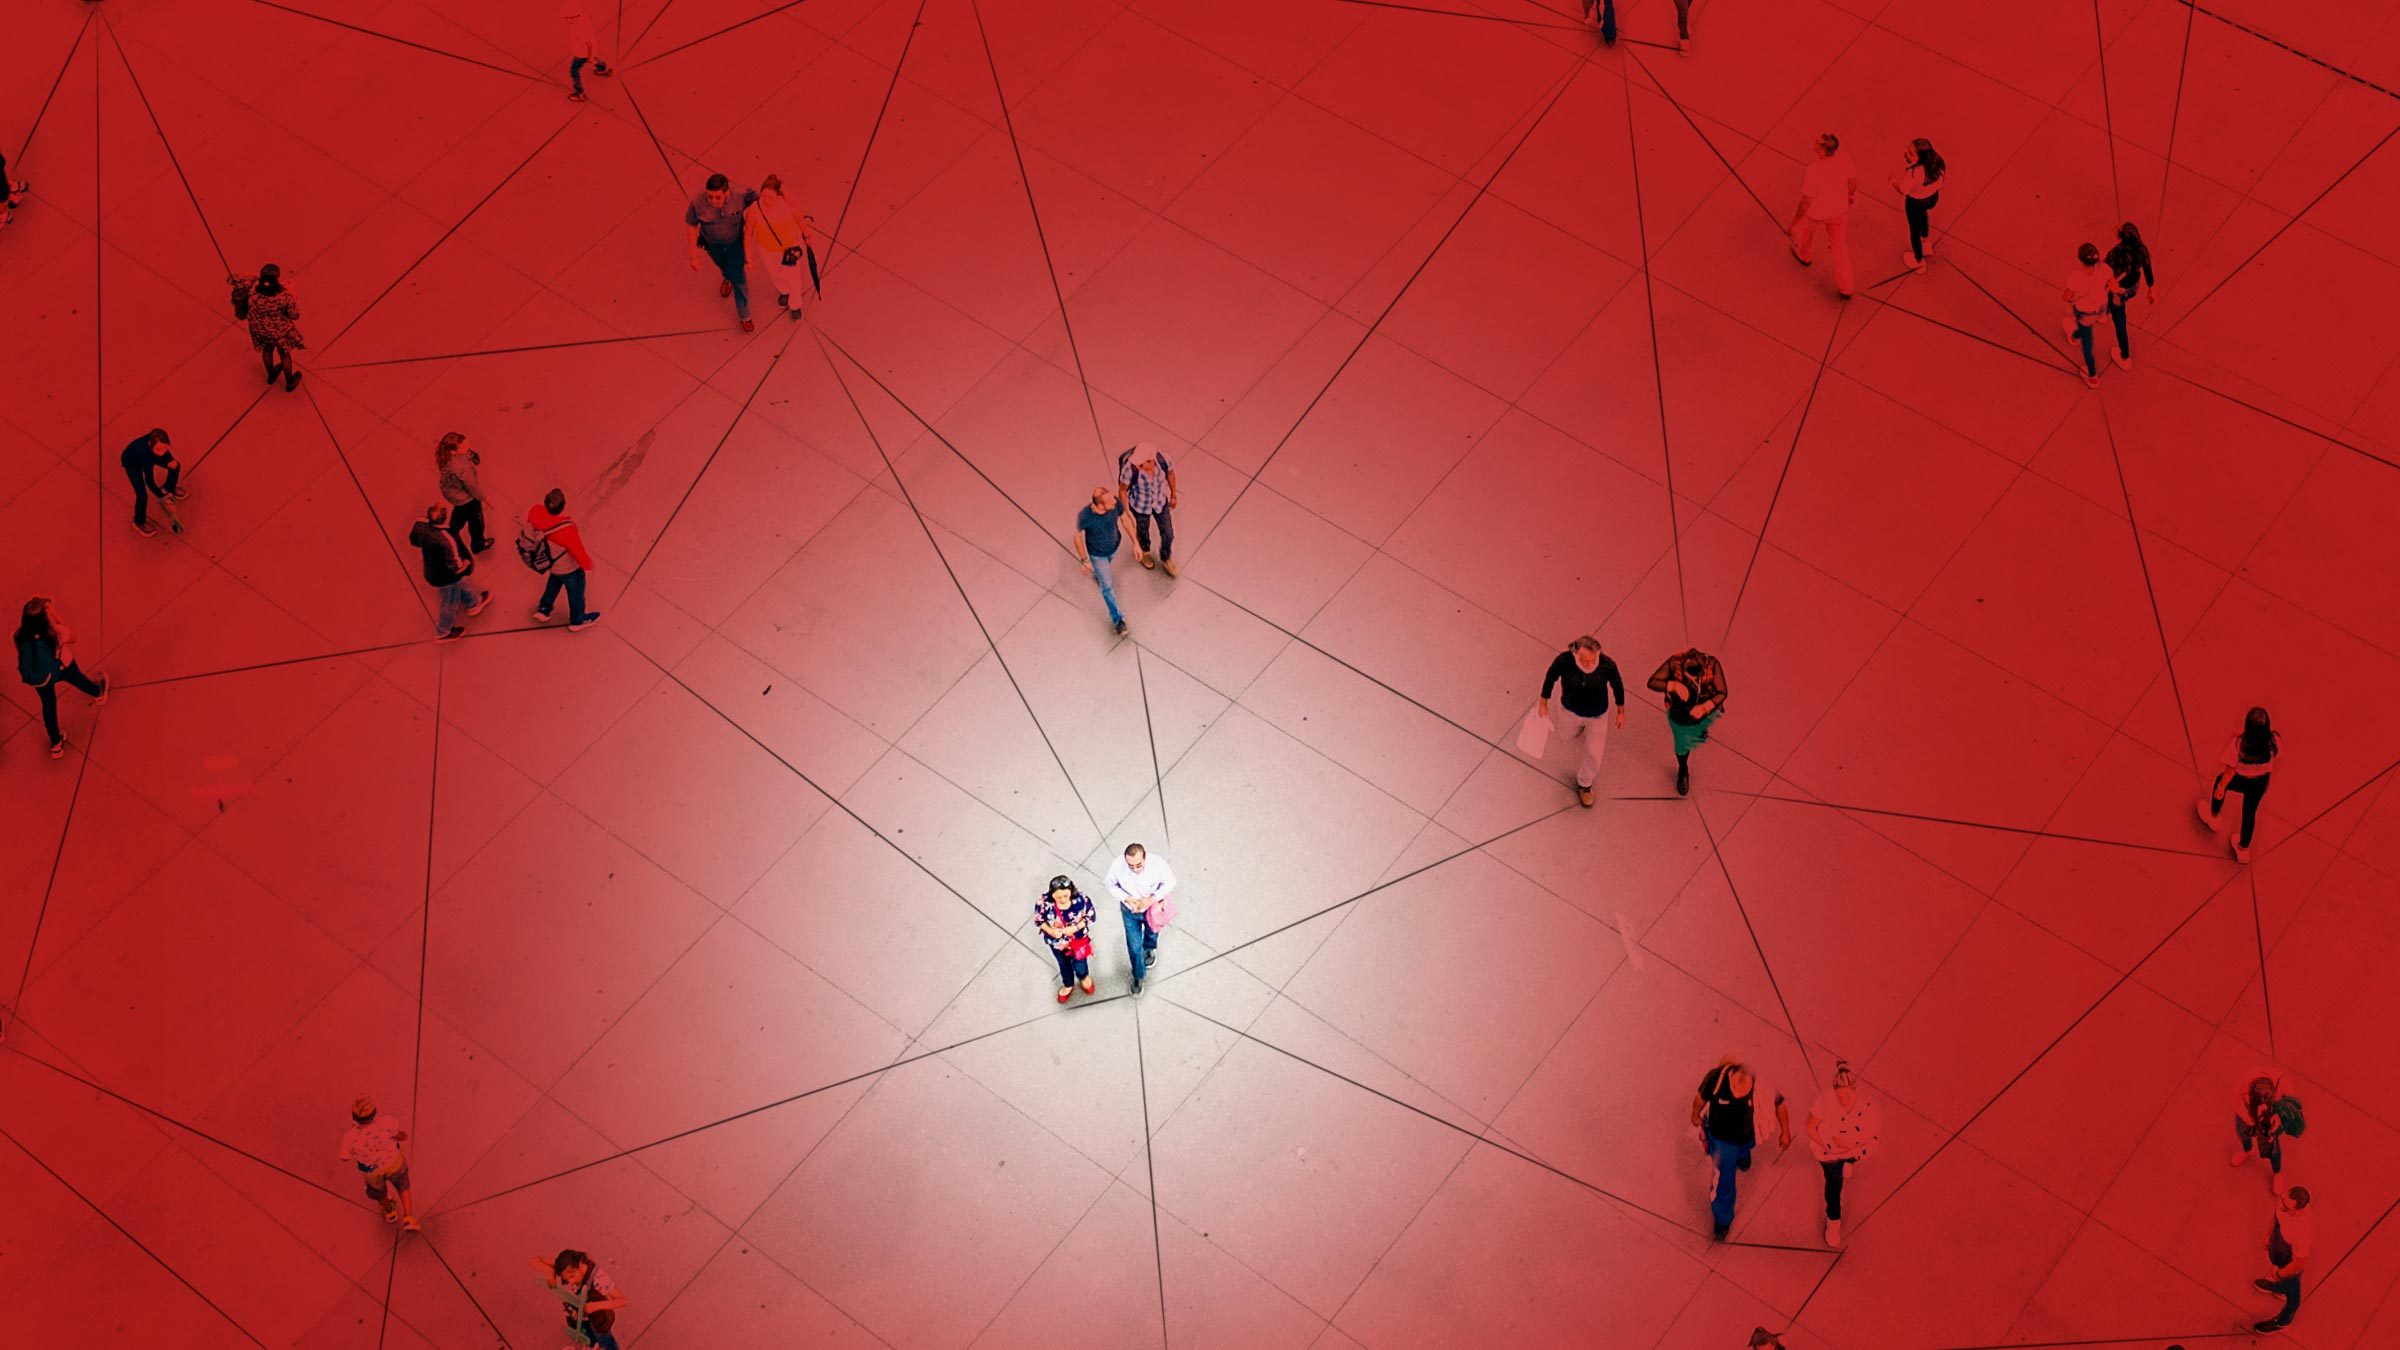 overhead view of people. connected by lines. red overlay.